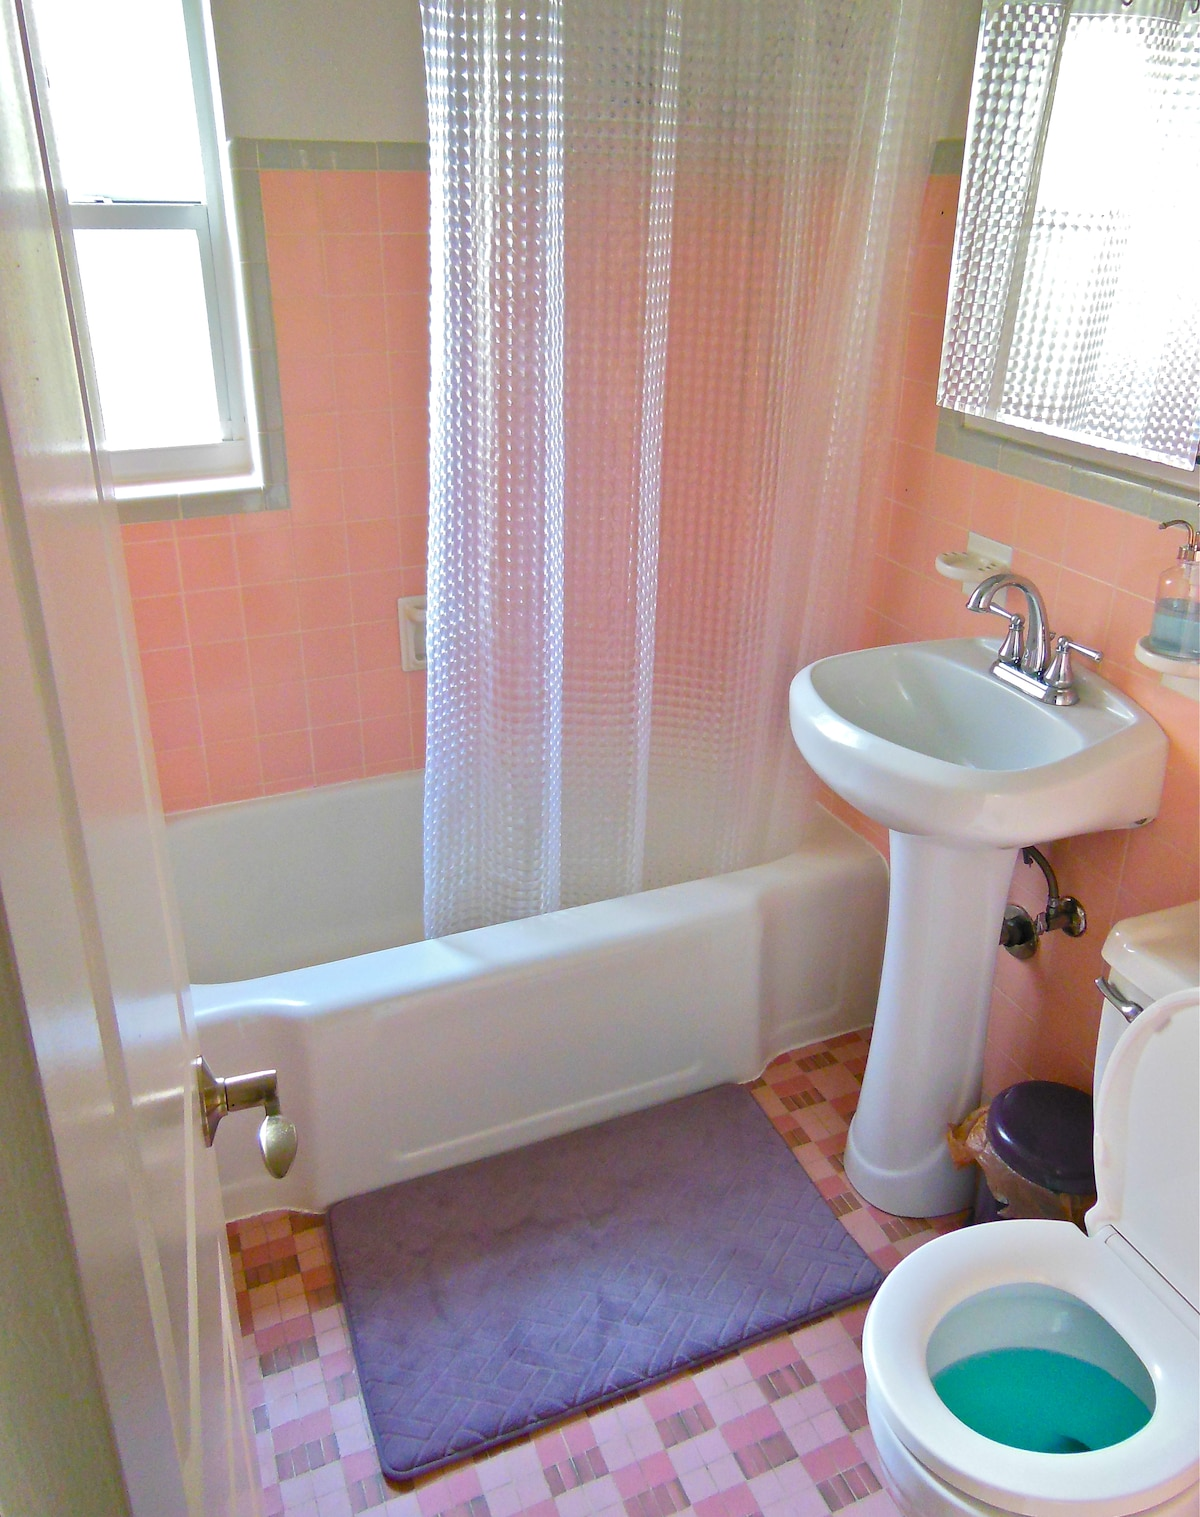 Your bathroom, a 1950's old-school Florida styled bathroom which is spotlessly clean